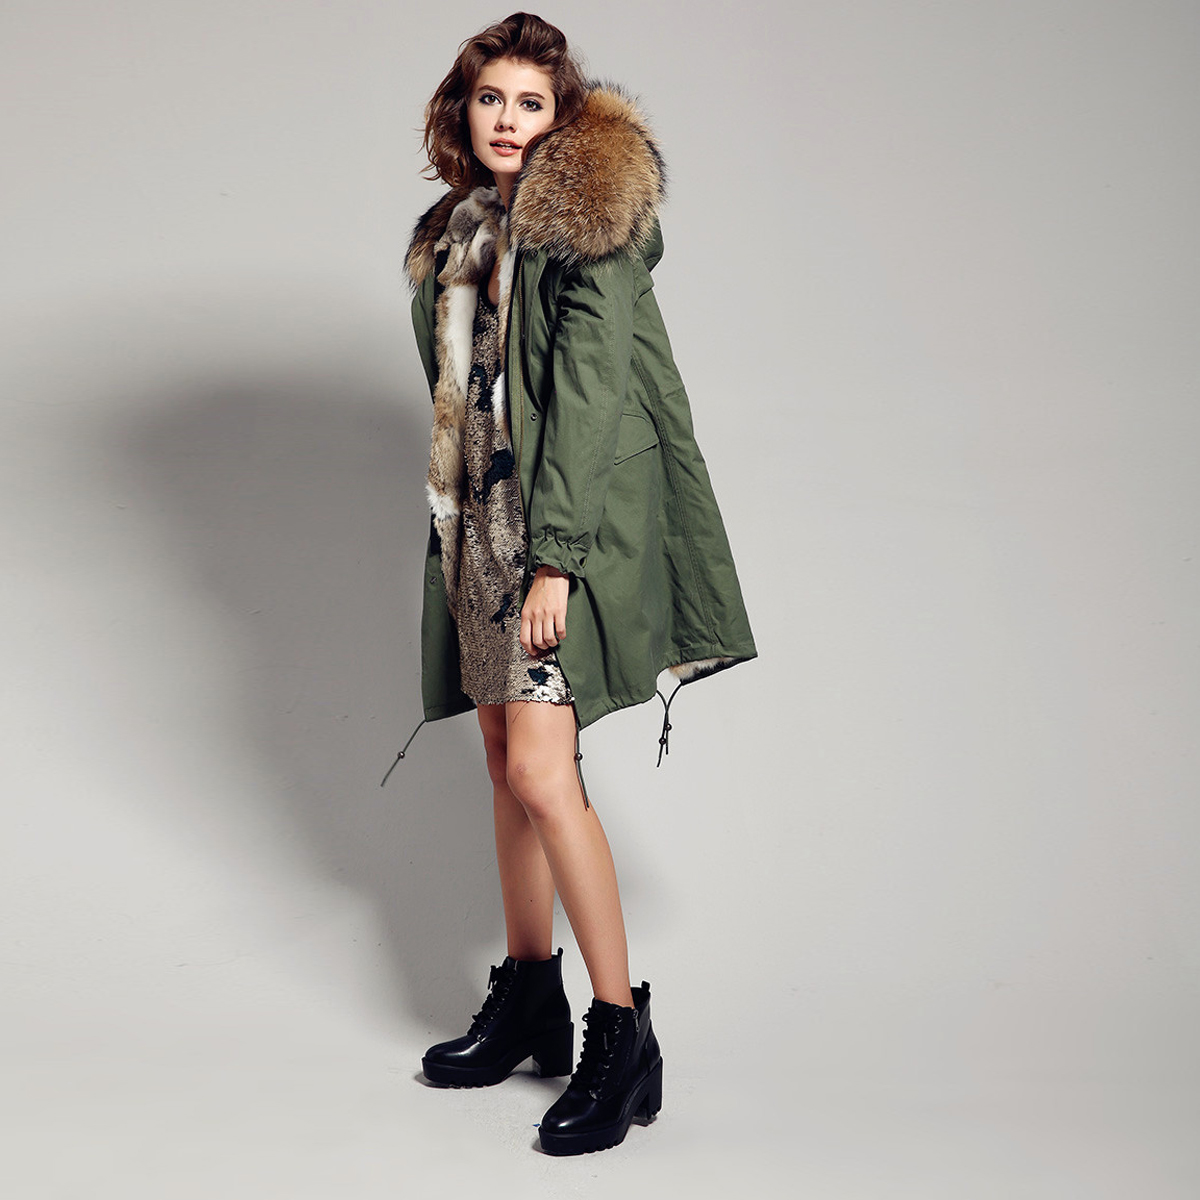 Long Color Veste Femmes Armée Jazzevar Naturel D'hiver color 16 color color Vert 16 color color Raton 14 2 15 Manteau Capuchon color color 13 1 Lapin 12 De 3 color color color 11 4 Mode Grand À 10 Outwear Parkas color 5 color 9 color color Laveur Bordée 8 color color 7 6 Fourrure RqH5wHPE